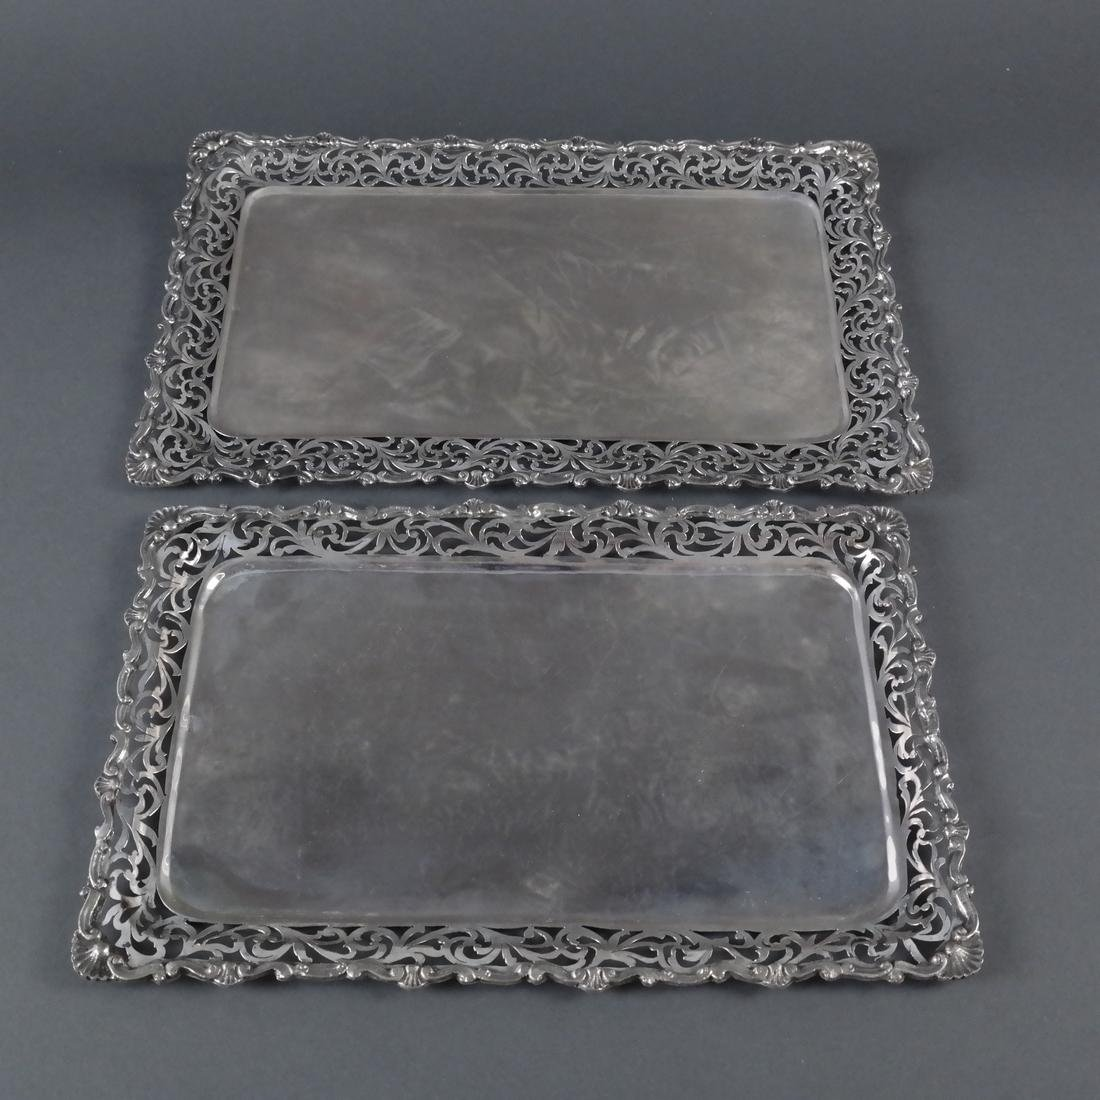 2 .800 Standard Silver Rectangular Trays